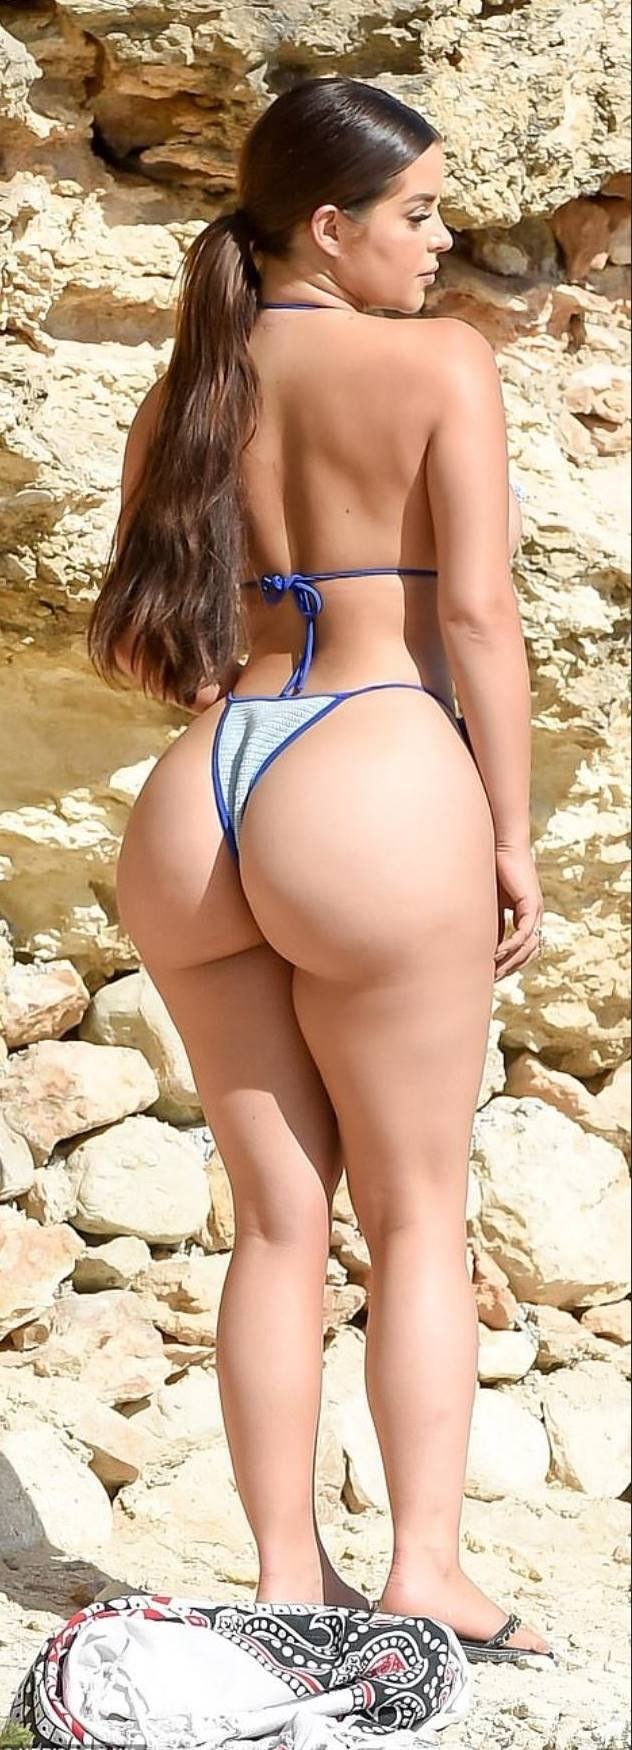 Demi Rose Mawby Huge Ass And Boobs